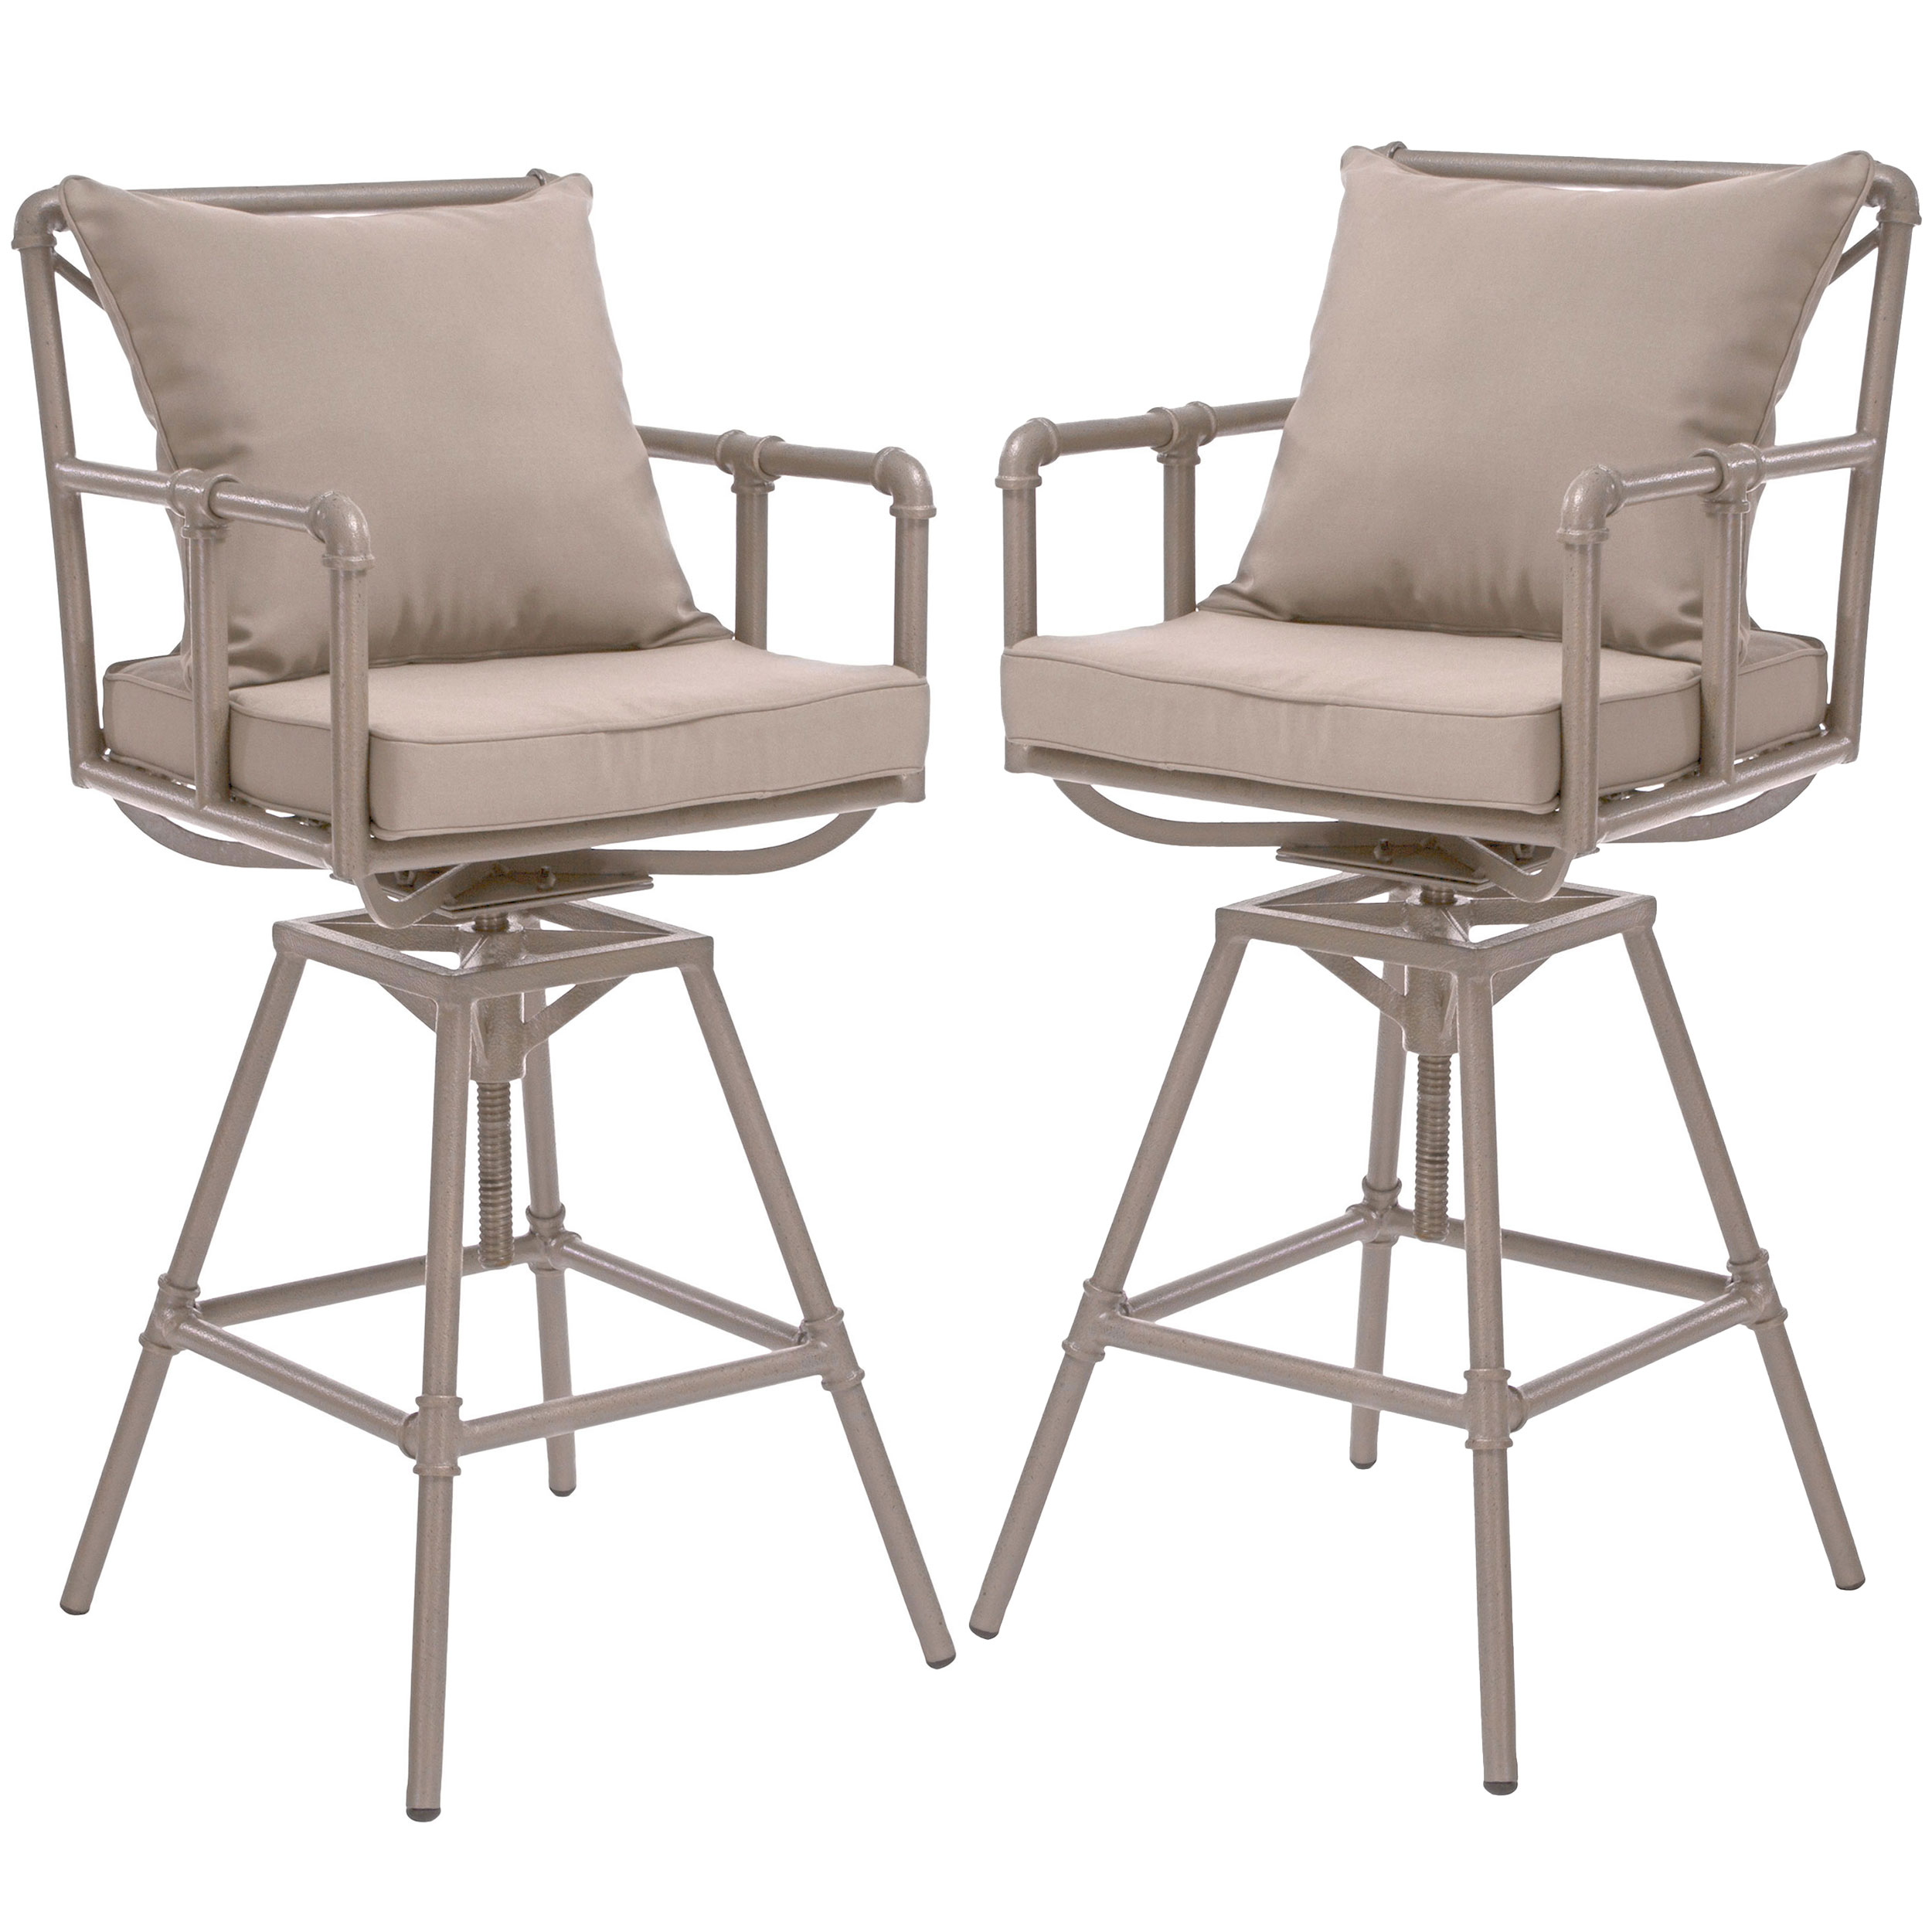 Odele Pipe Outdoor Taupe Swivel Bar Stools with Cushions (Set of 2) by GDF Studio